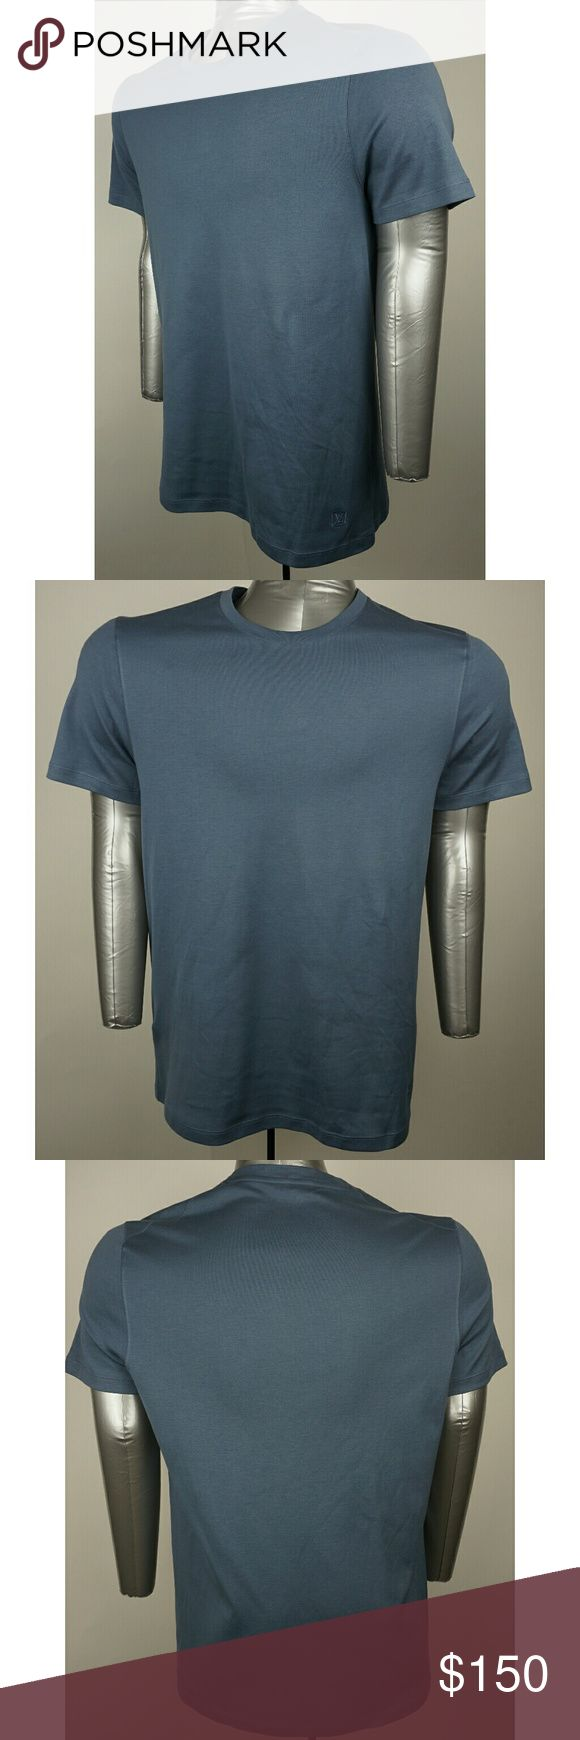 """Men's Louis Vuitton T-Shirt Short sleeve t-shirt with embroided LV. Luxurious blue color.  Worn 1 time and is in excellent condition.  -Sizing: *please measure your clothing to compare fit as sizing varies between designers and even identical garmets*. -Chest      - 20""""   (armpit to armpit across chest) -Shoulder- 17""""    (Straight across shoulders seam to seam) -Back       - 27.5""""  (Neck seam to bottom of shirt-excludes collar) -Sleeves  - 9""""  (Shoulder seam to end of cuff) -Material: 100%…"""